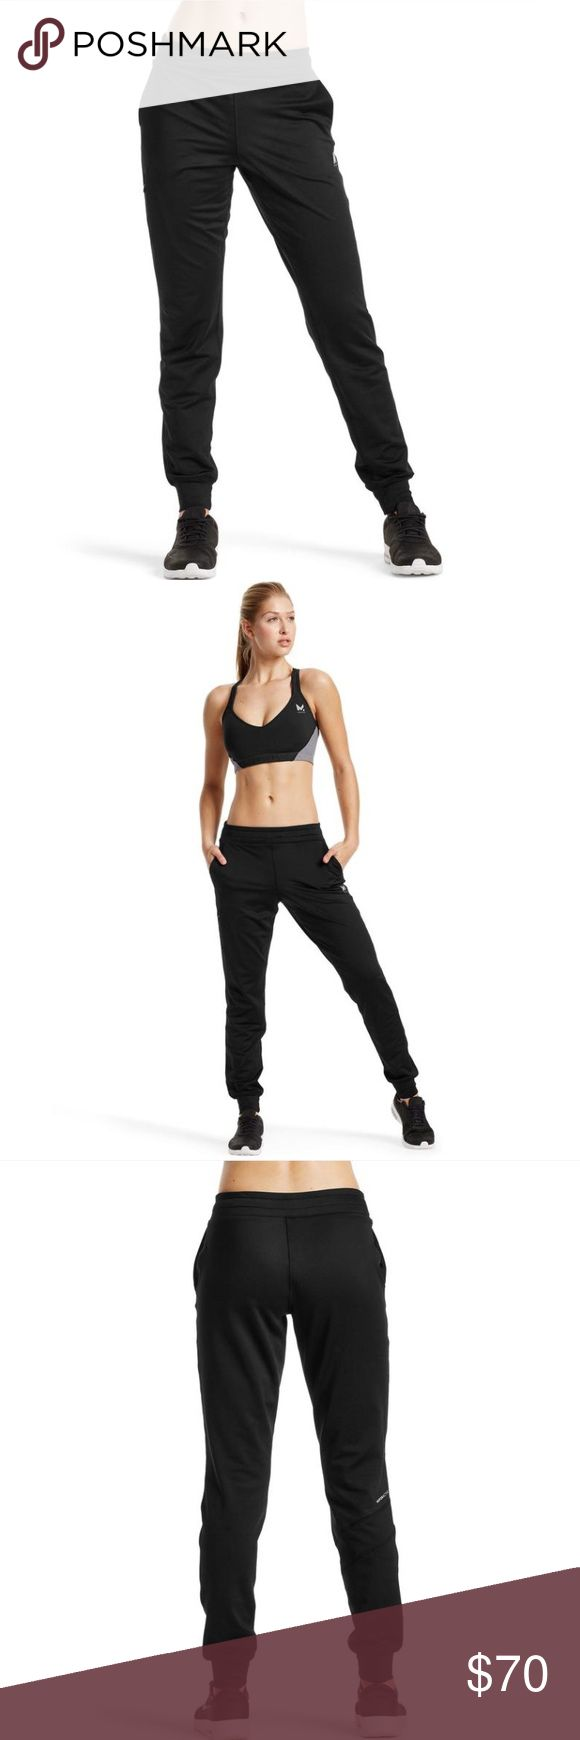 Mission Vapor Active atmosphere jogger pants BRAND NEW WITH TAGS - Mission athletics black jogger pants, size XS, revolutionary vaporactive material attracts moisture at the vapor level and rapidly removes sweat, keeping you cool, dry and comfortable. Adjustable waistband for drawstring fit, full zip side pocket. Mission Pants Track Pants & Joggers